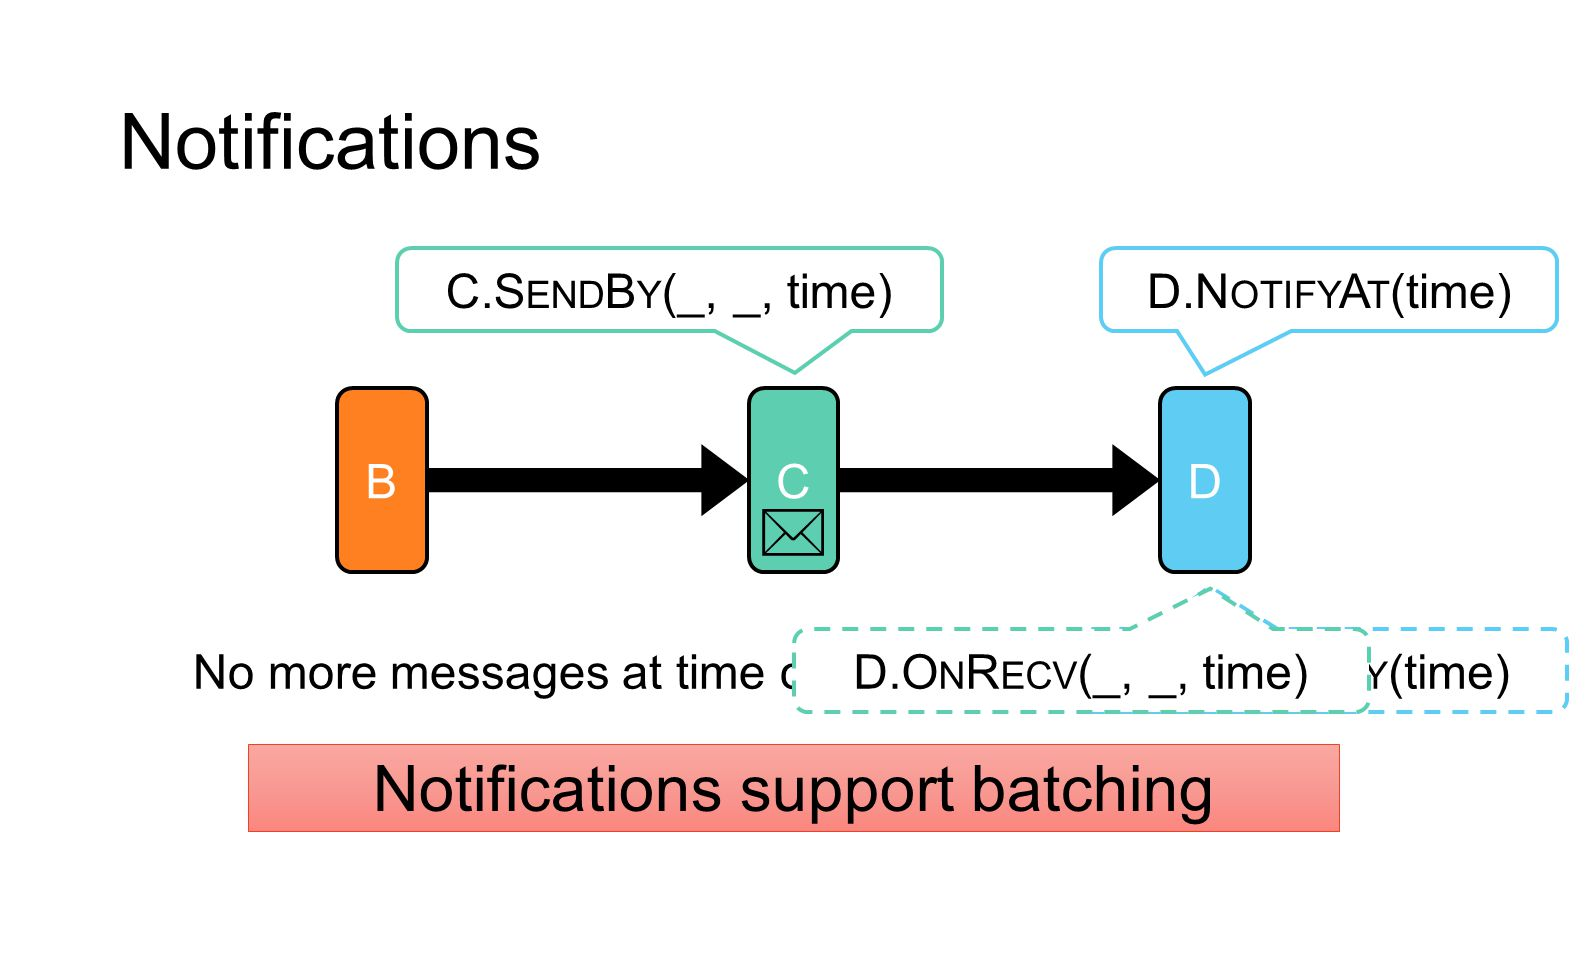 Notifications support batching